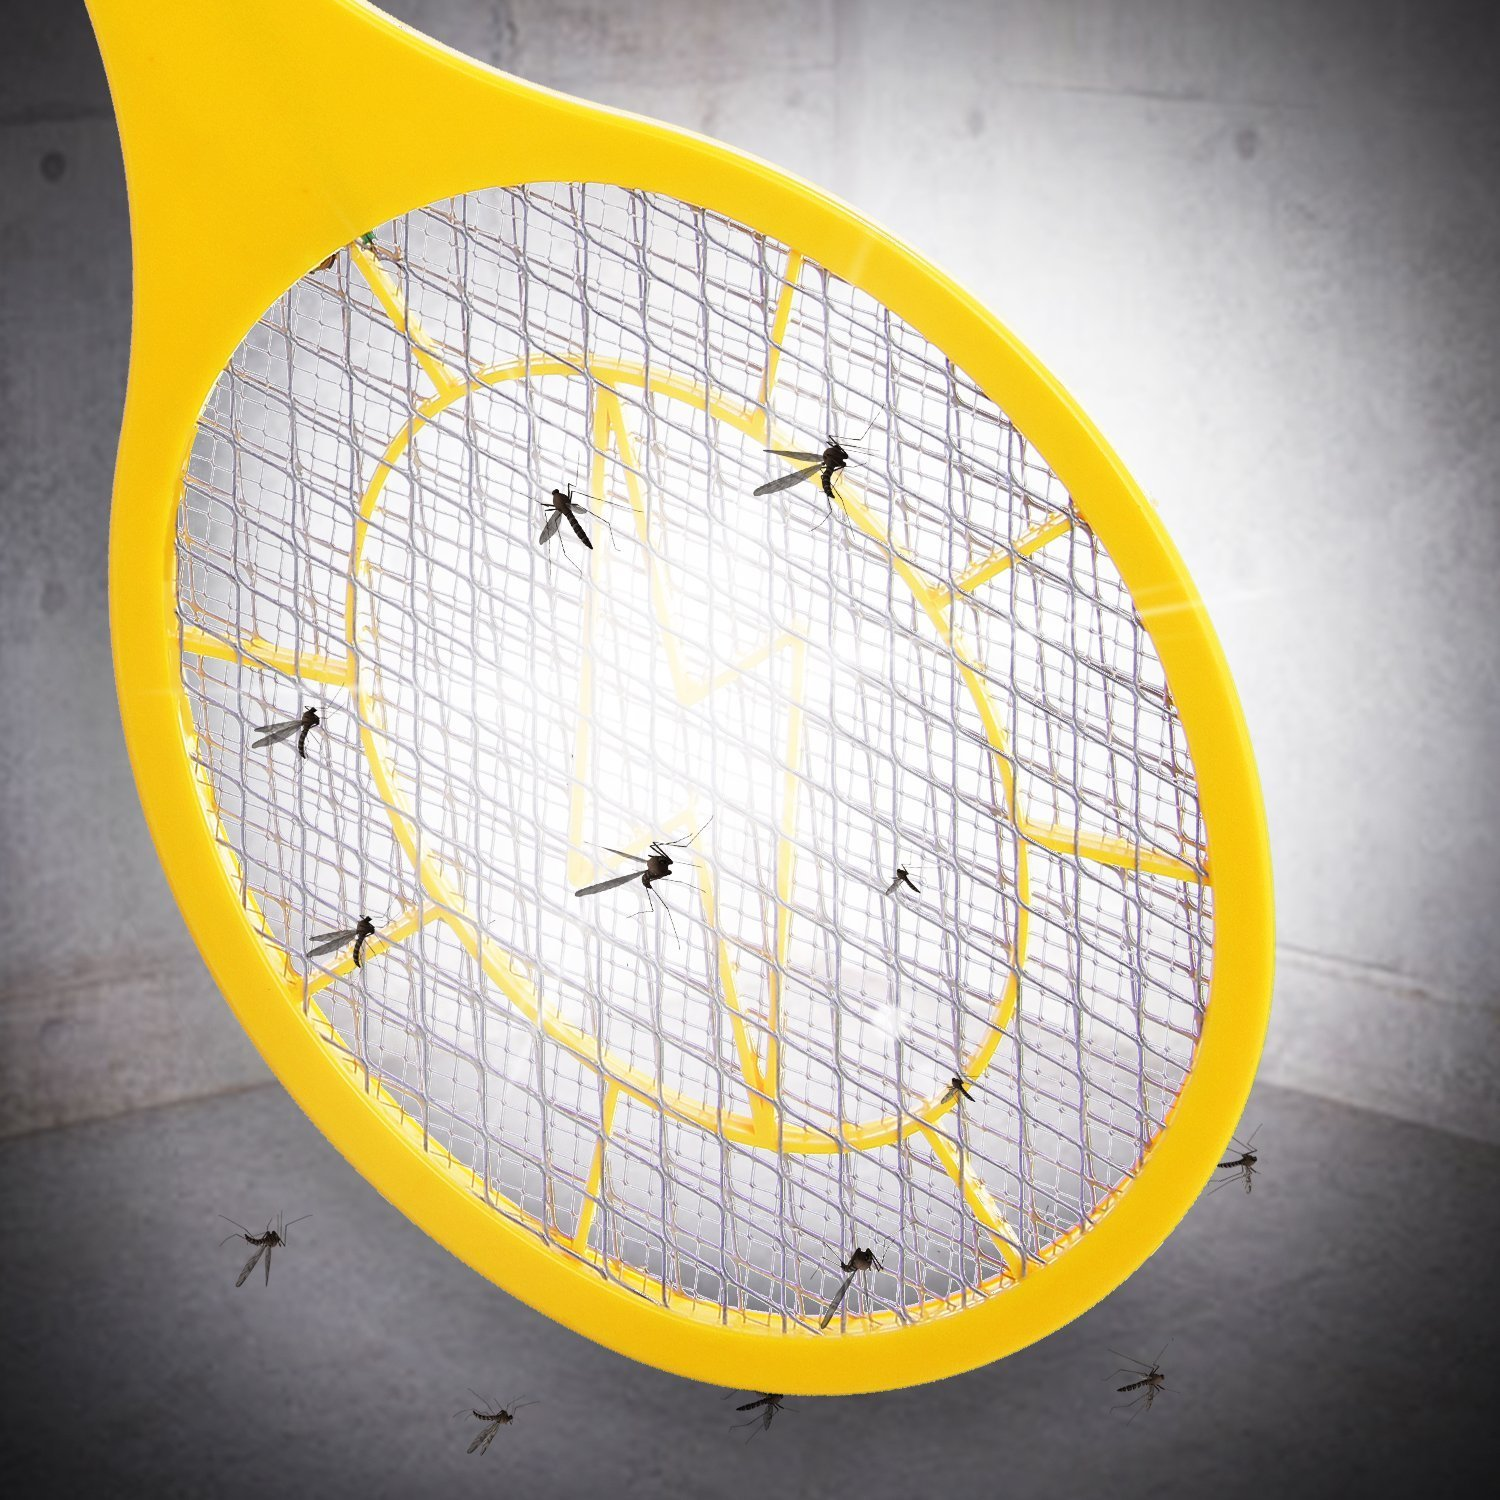 Bug zapper- Electric Fly Swatter ,handheld Insect Fly Killer, Mosquito Zapper against Flies,Bugs,Bees and Other Pest,Unique 3-Layer Safety Mesh Safe to Touch for Indoor and Outdoor Pest Control by Henscoqi (Image #5)